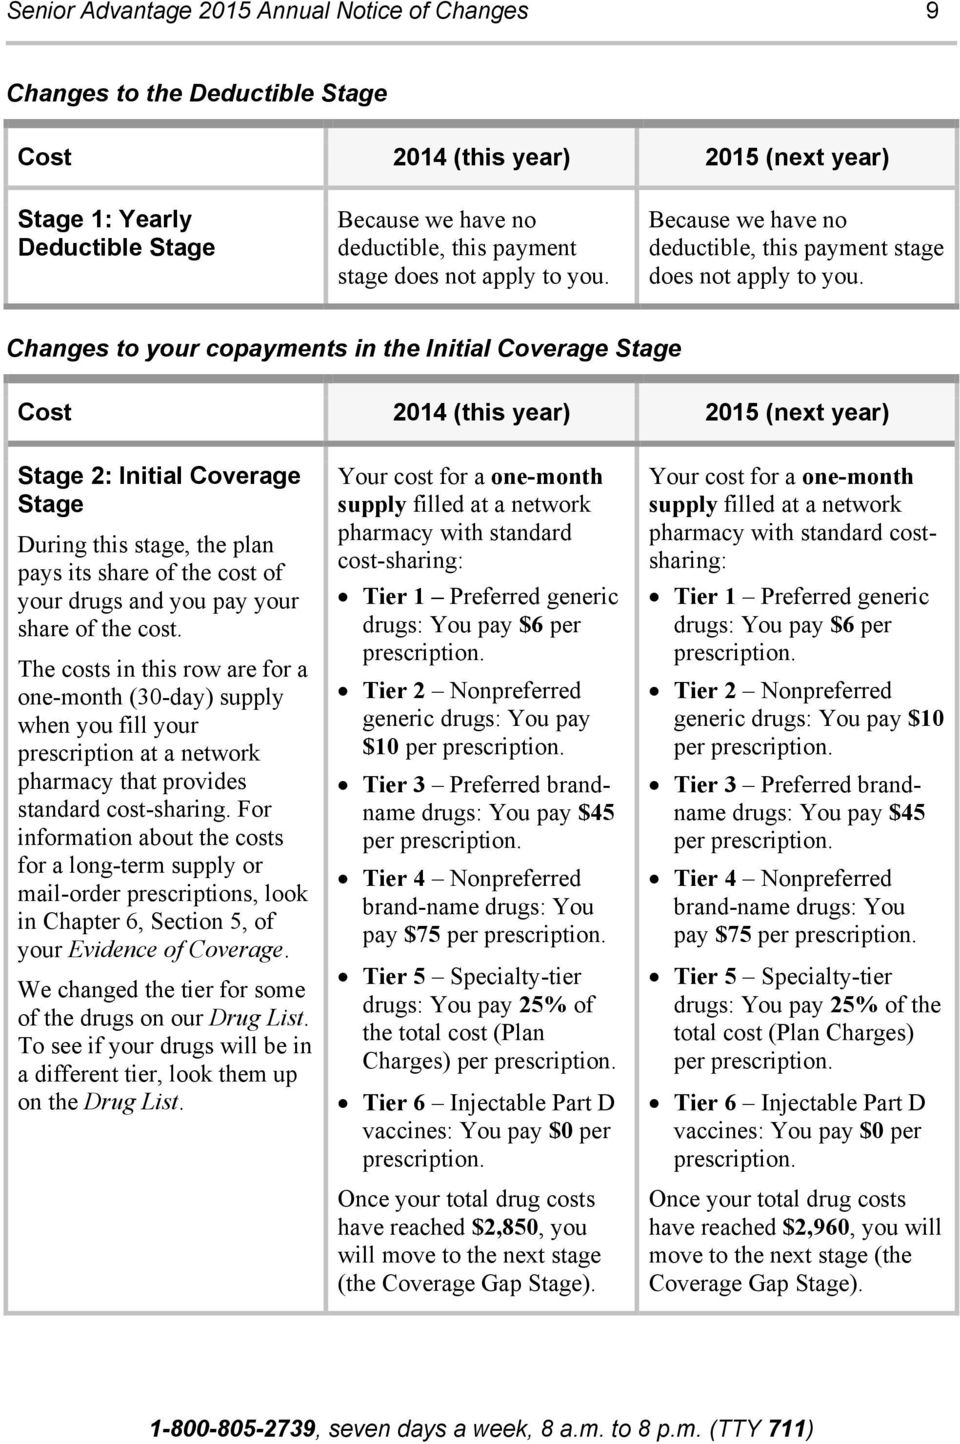 Changes to your copayments in the Initial Coverage Stage Cost 2014 (this year) 2015 (next year) Stage 2: Initial Coverage Stage During this stage, the plan pays its share of the cost of your drugs